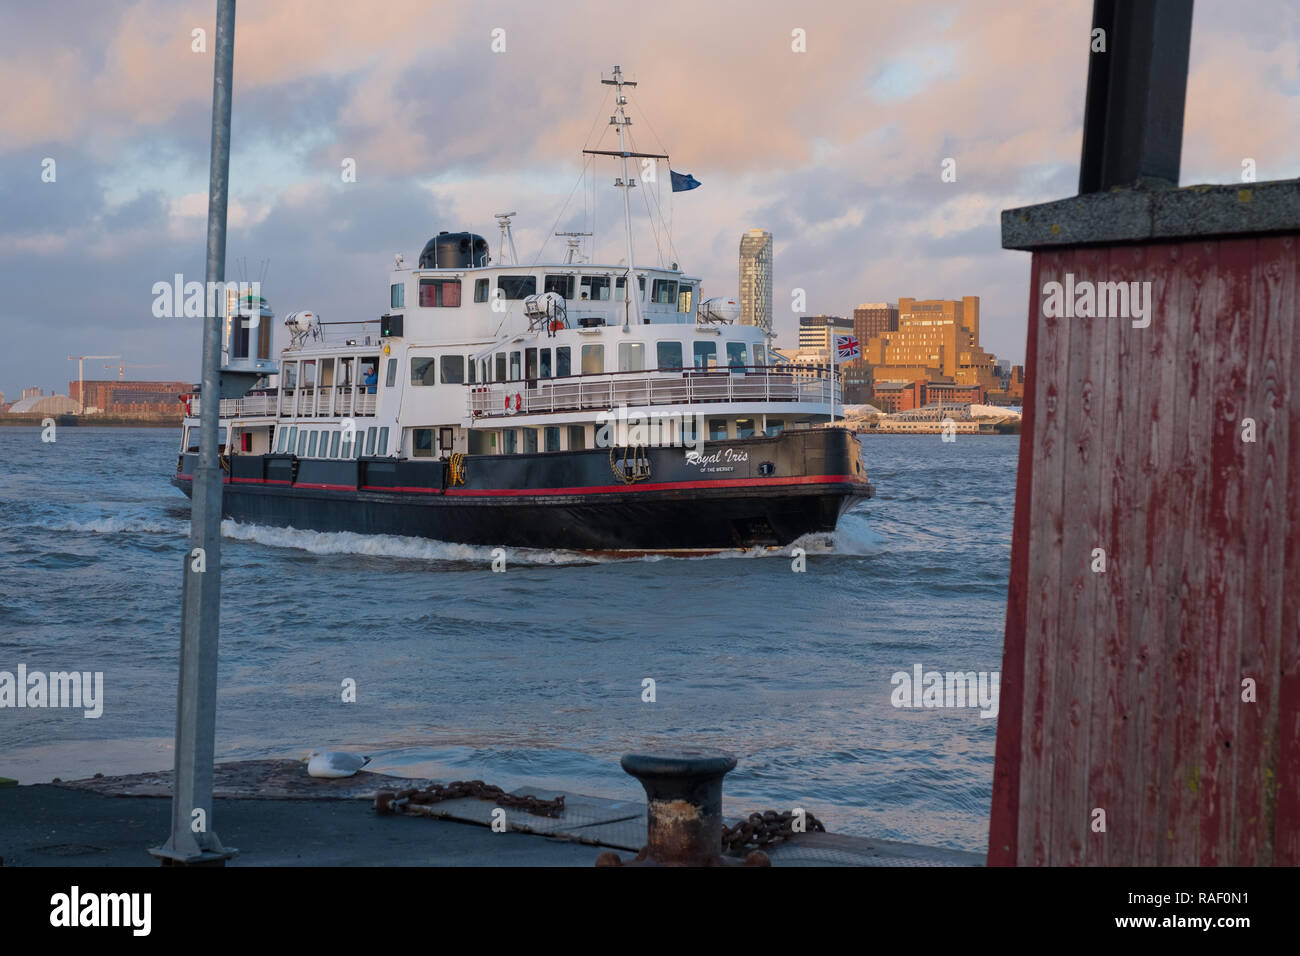 Royal Iris of the Mersey ferry on the River Mersey approaching Woodside, Birkenhead - Stock Image